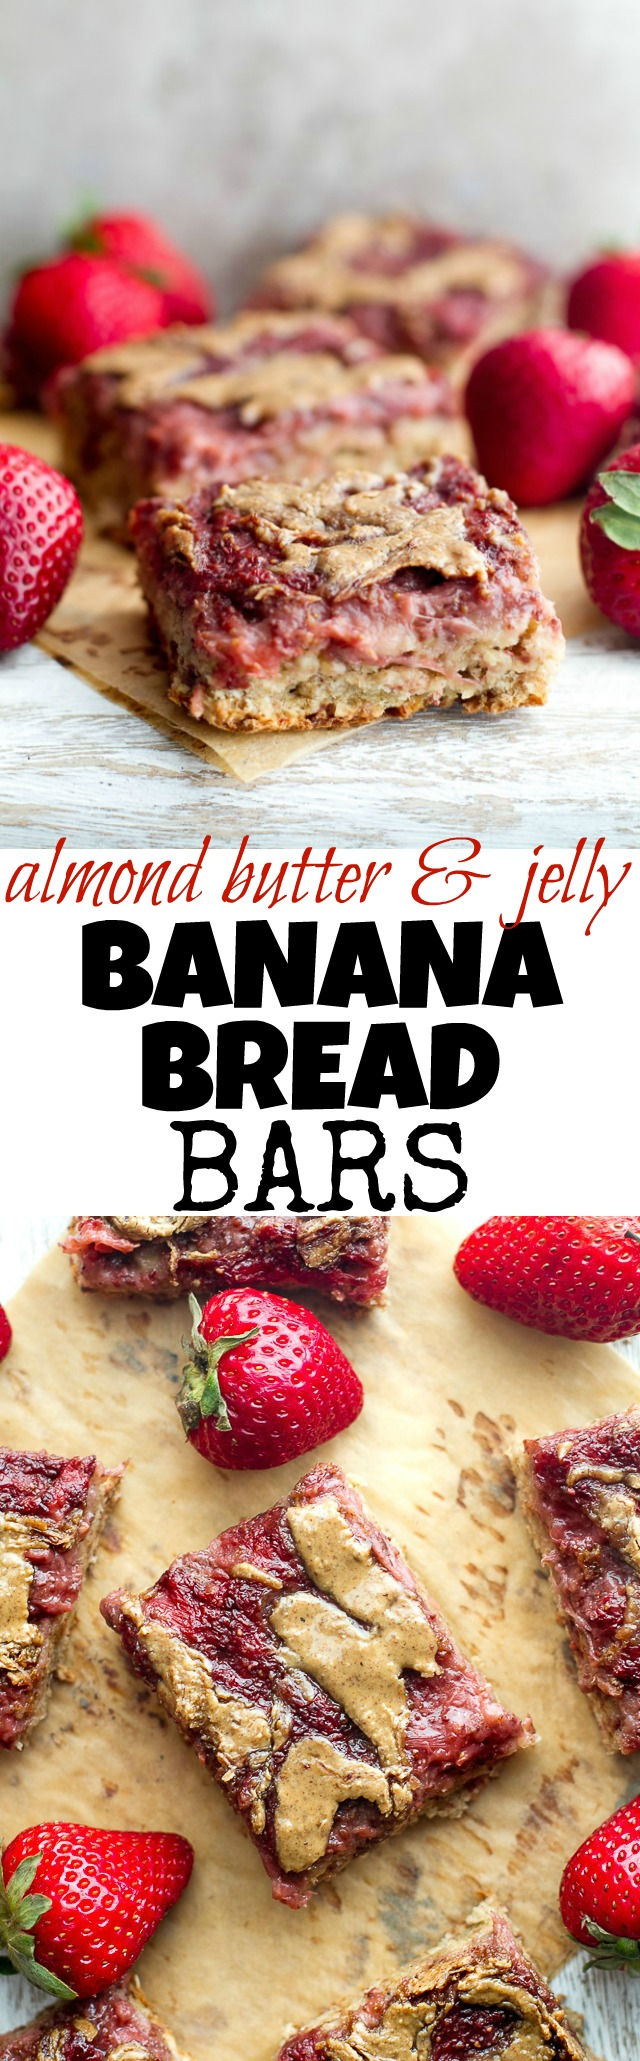 These DELICIOUS Almond Butter and Jelly Banana Bread Bars are SO soft, tender, and flavorful that you'd never believe they're made without any flour, oil, or refined sugar! | runningwithspoons.com #vegan #glutenfree #healthy #recipe